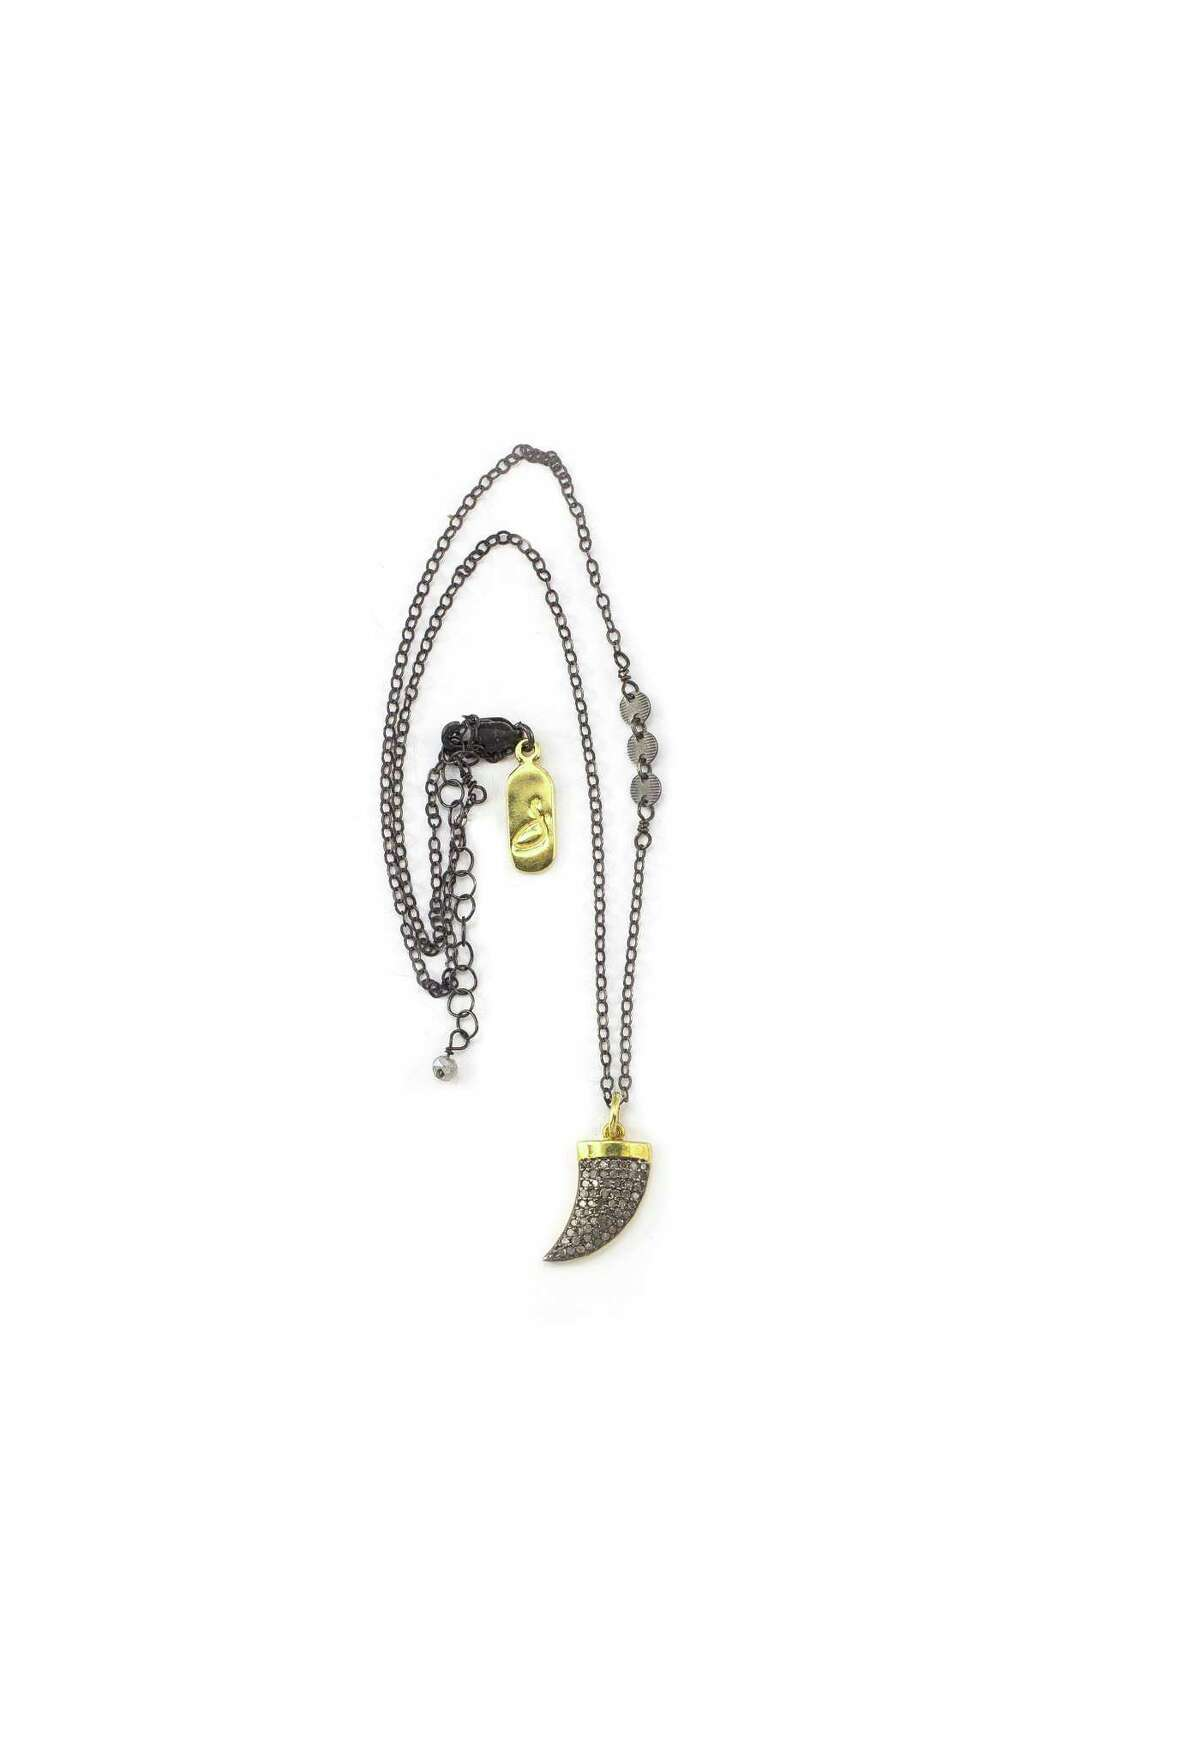 """A 16"""" Oxidized Sterling Silver Necklace with Small Diamond Horn, $155, at J. Landa in Rice Village"""